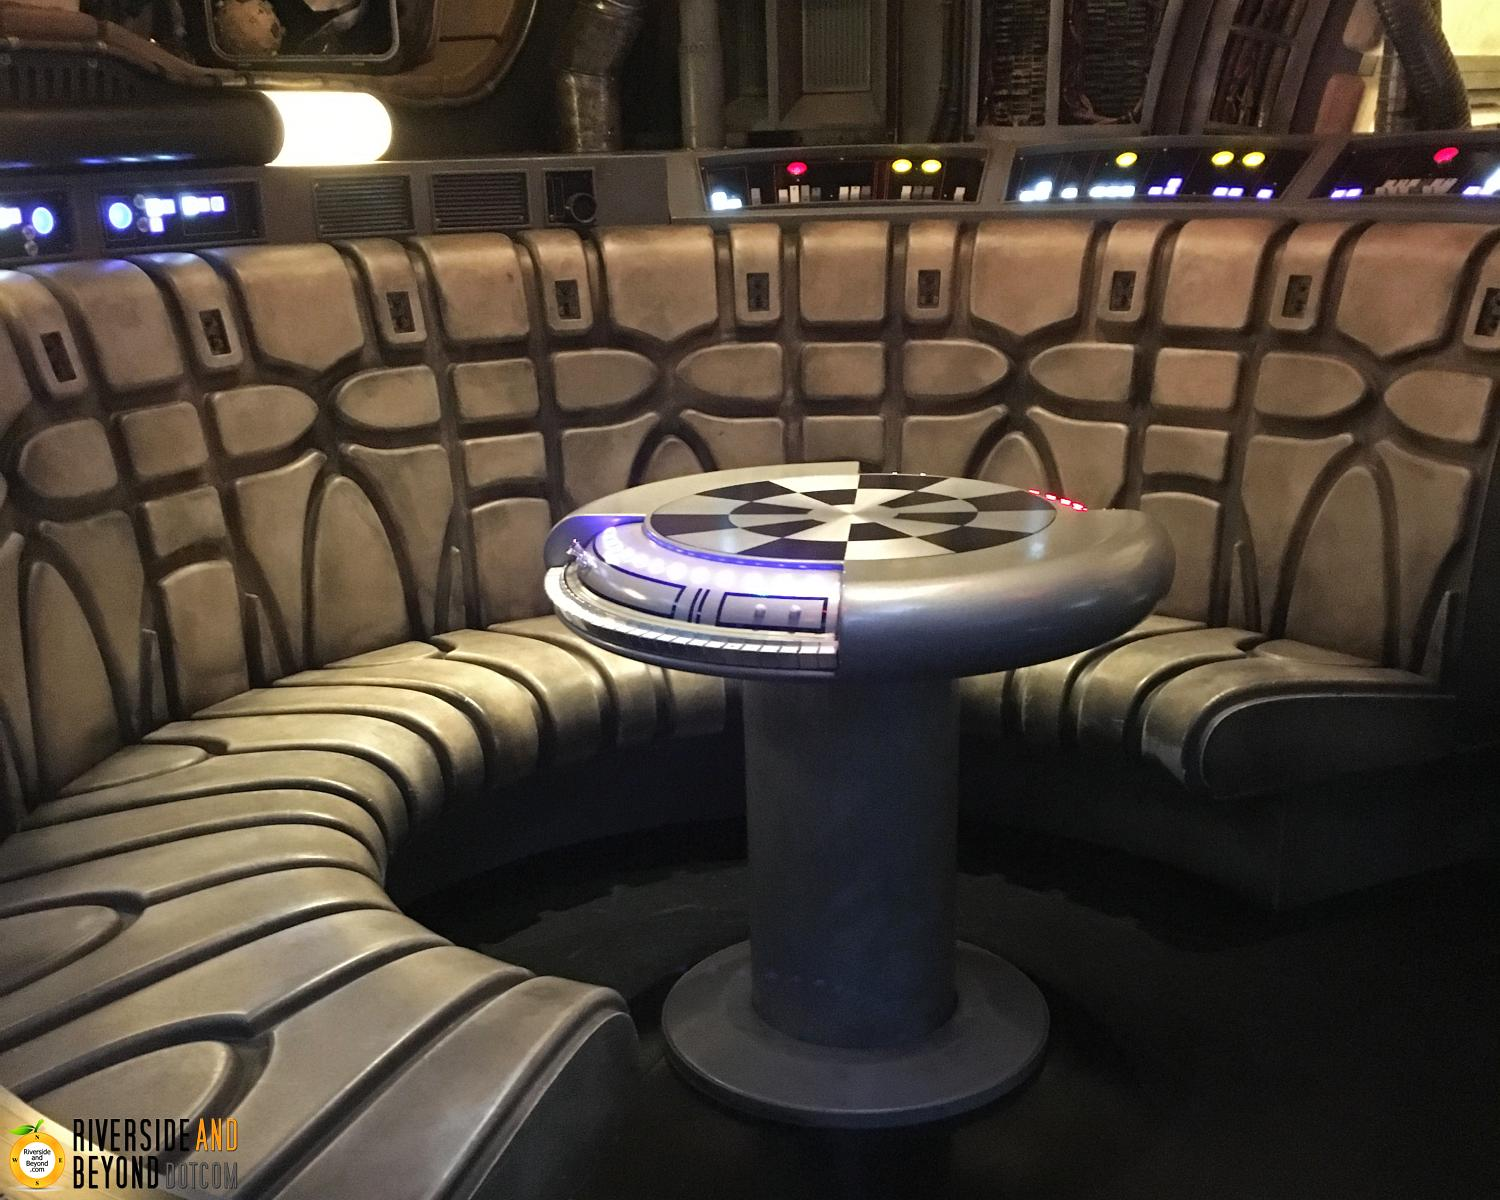 The Millennium Falcon in Star Wars land at Disneyland.